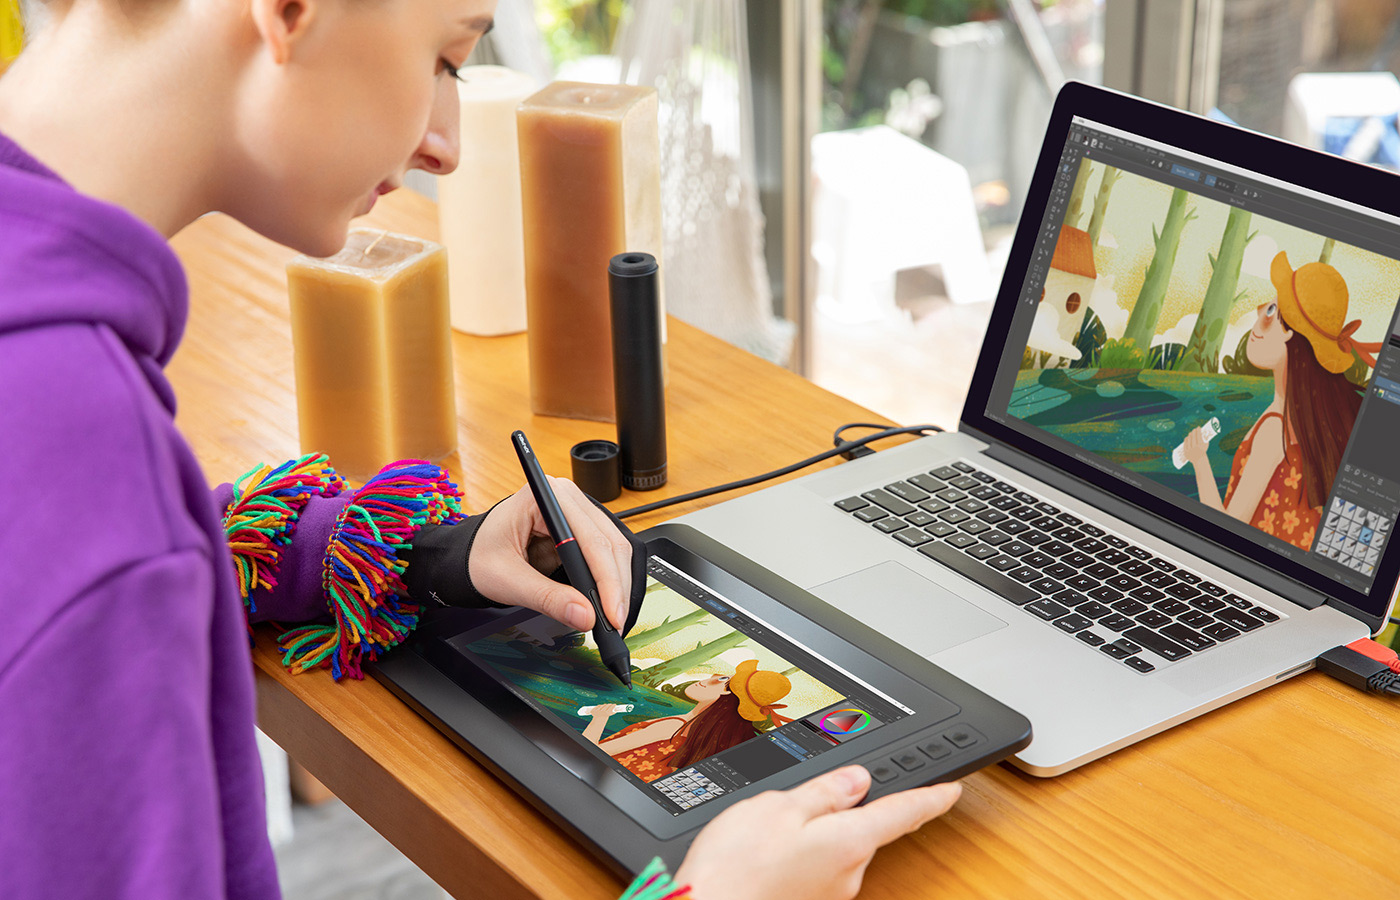 digital sketching  ,drawing ,animation ,painting and editing photos with XP-Pen Artist 12 Pro Screen graphics Tablet